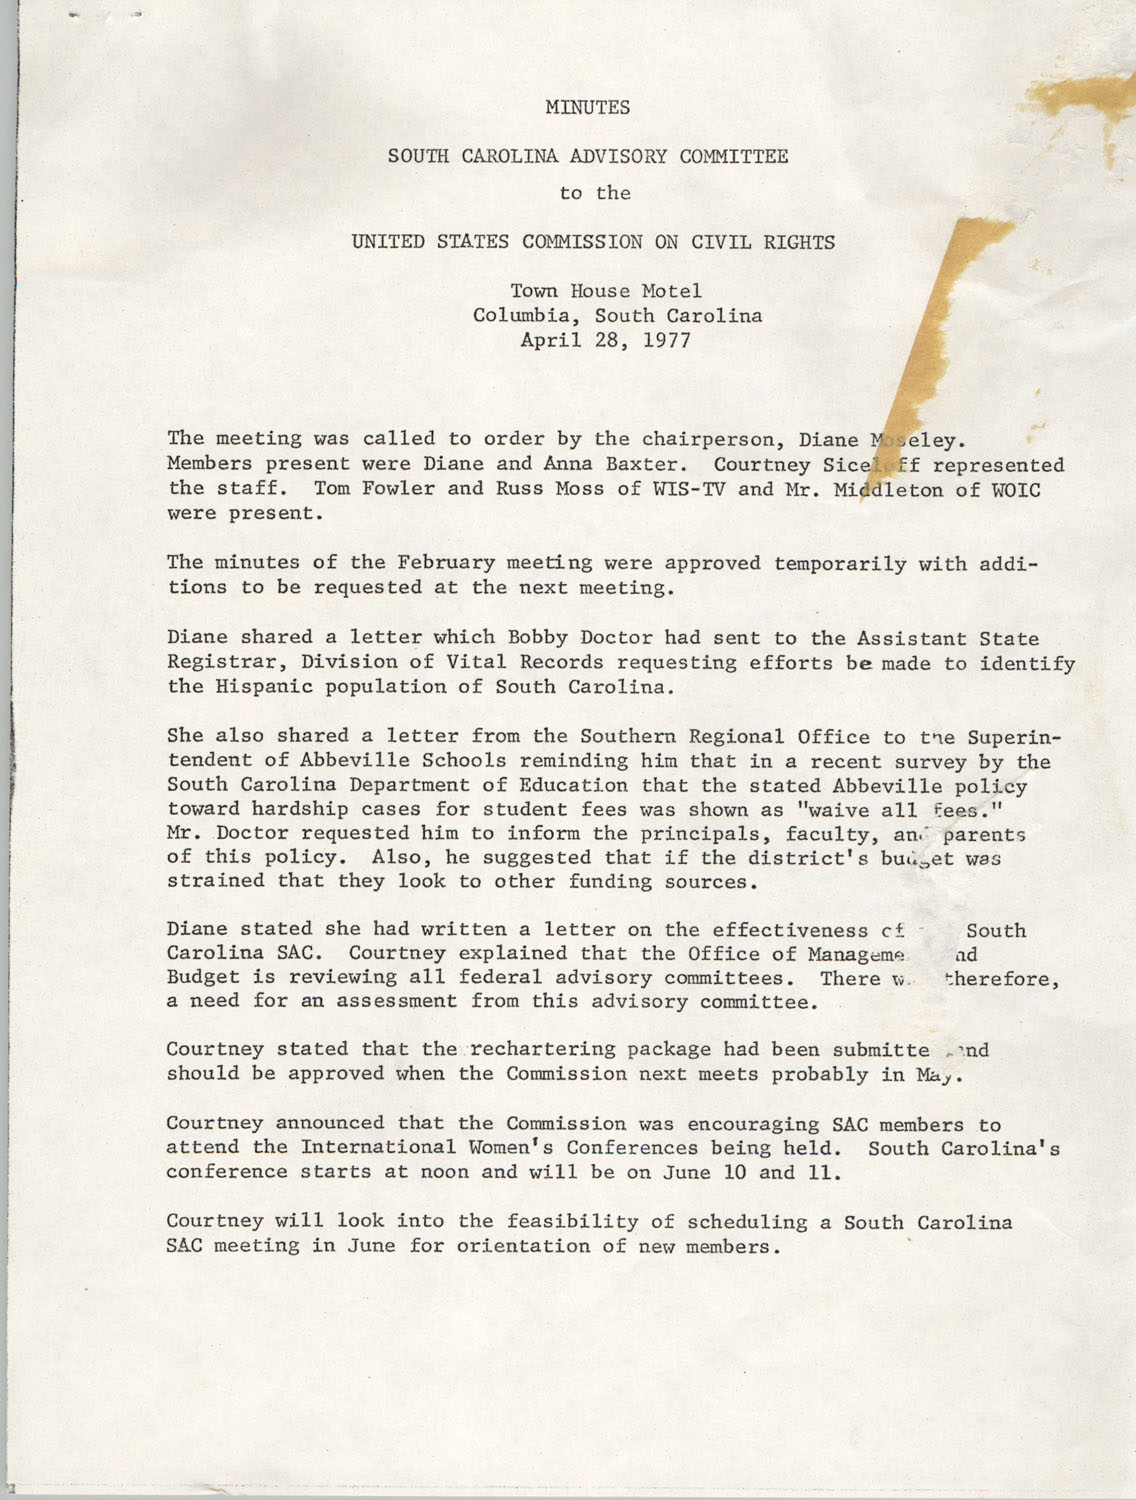 Minutes, South Carolina State Advisory to the U.S. Commission on Civil Rights, April 28, 1977